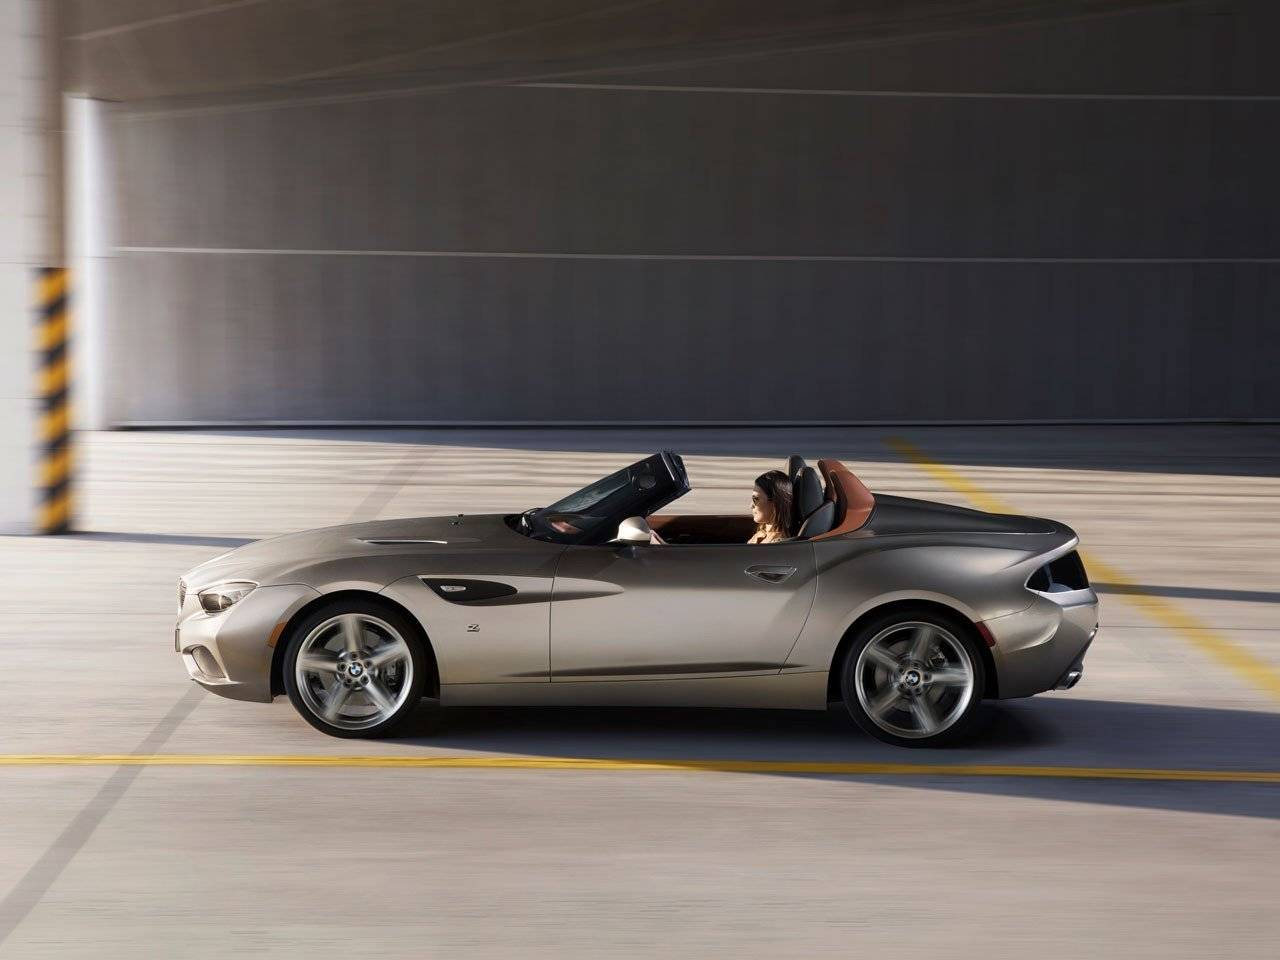 Bmw Zagato Roadster Is Prachtig Autowereld Com